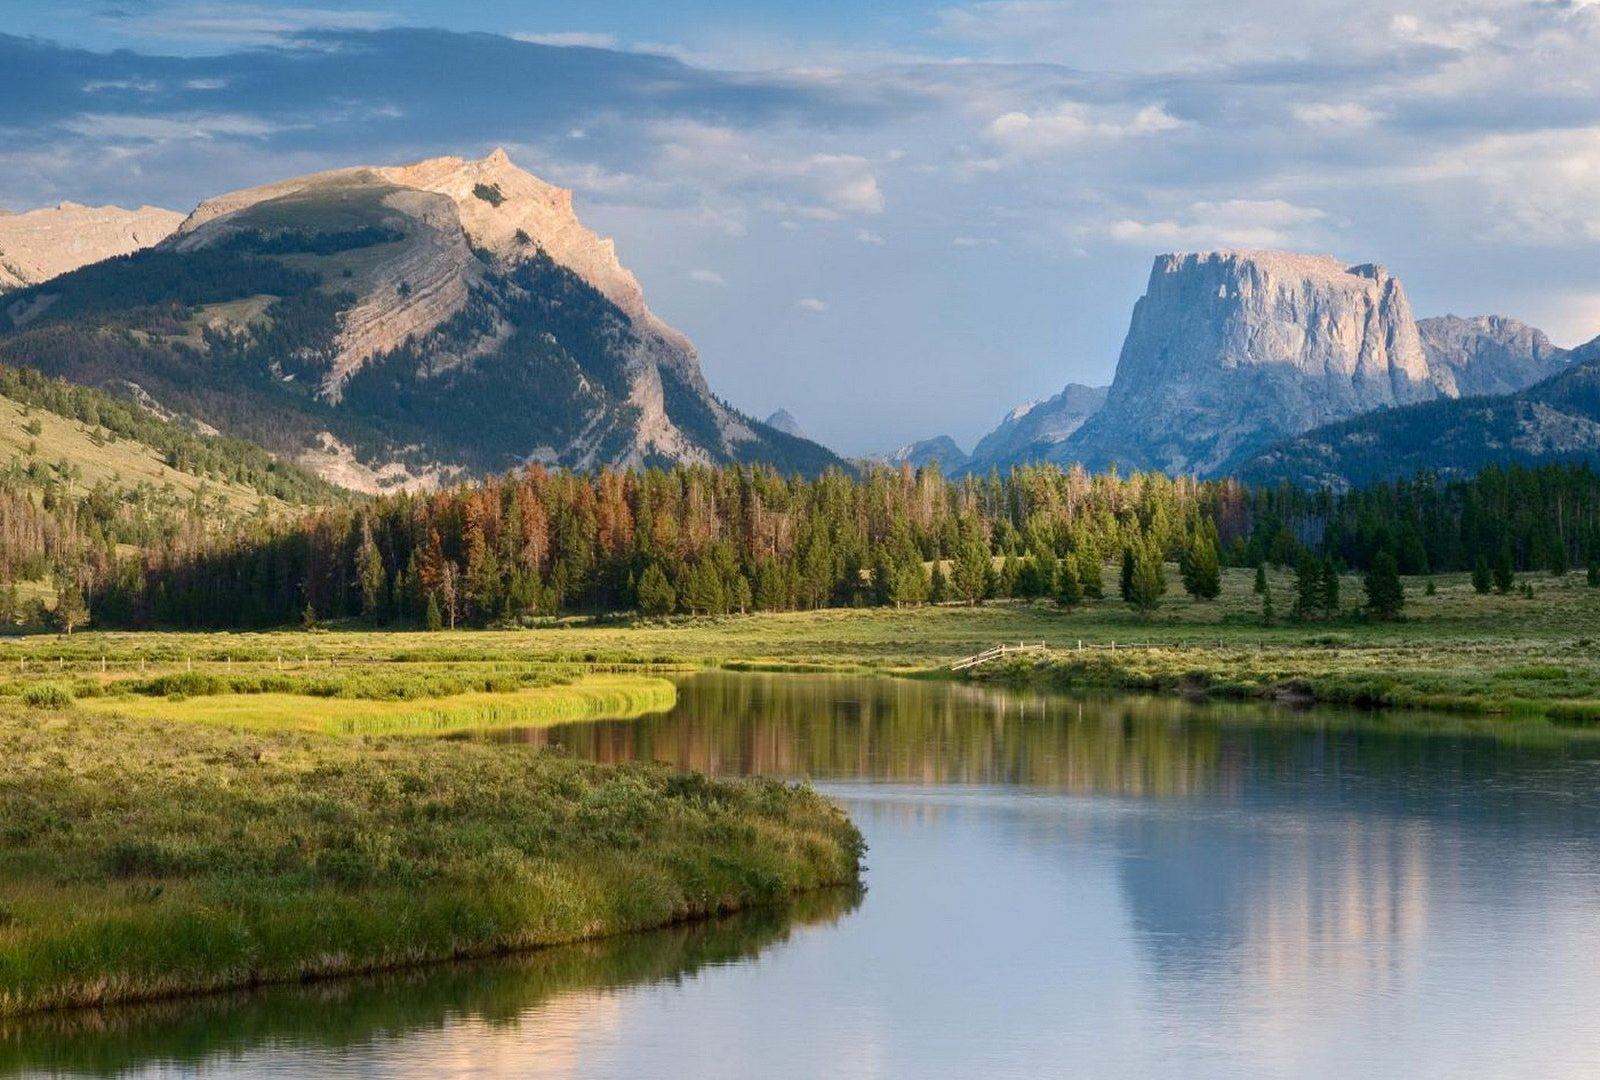 Mountains Natures Beauty Scenery Lake Sky Mountain - Headwaters Green River , HD Wallpaper & Backgrounds